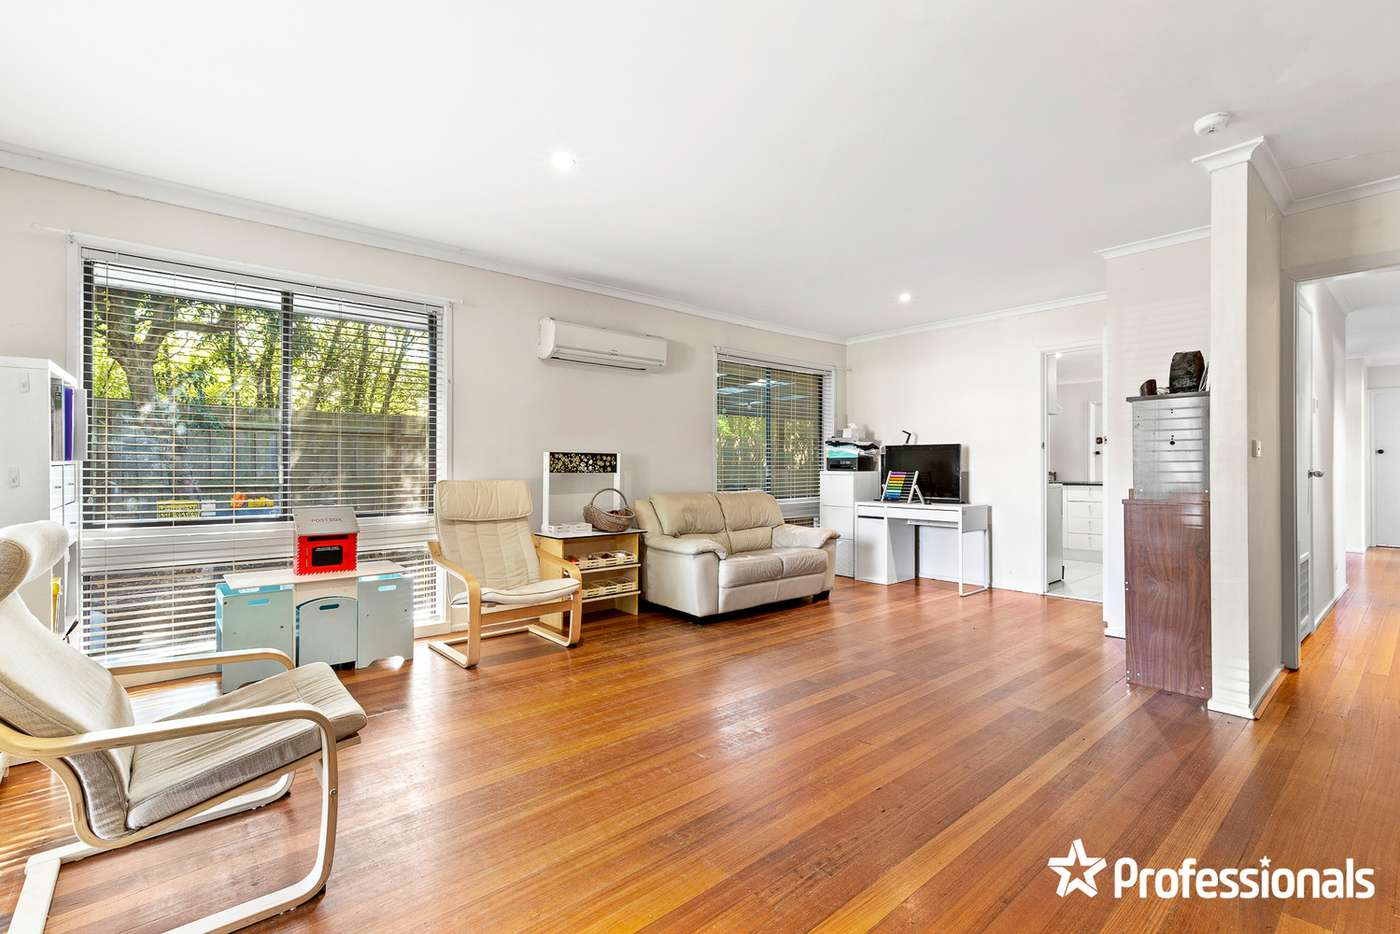 Fifth view of Homely house listing, 3 Ophelia Street, Ferntree Gully VIC 3156